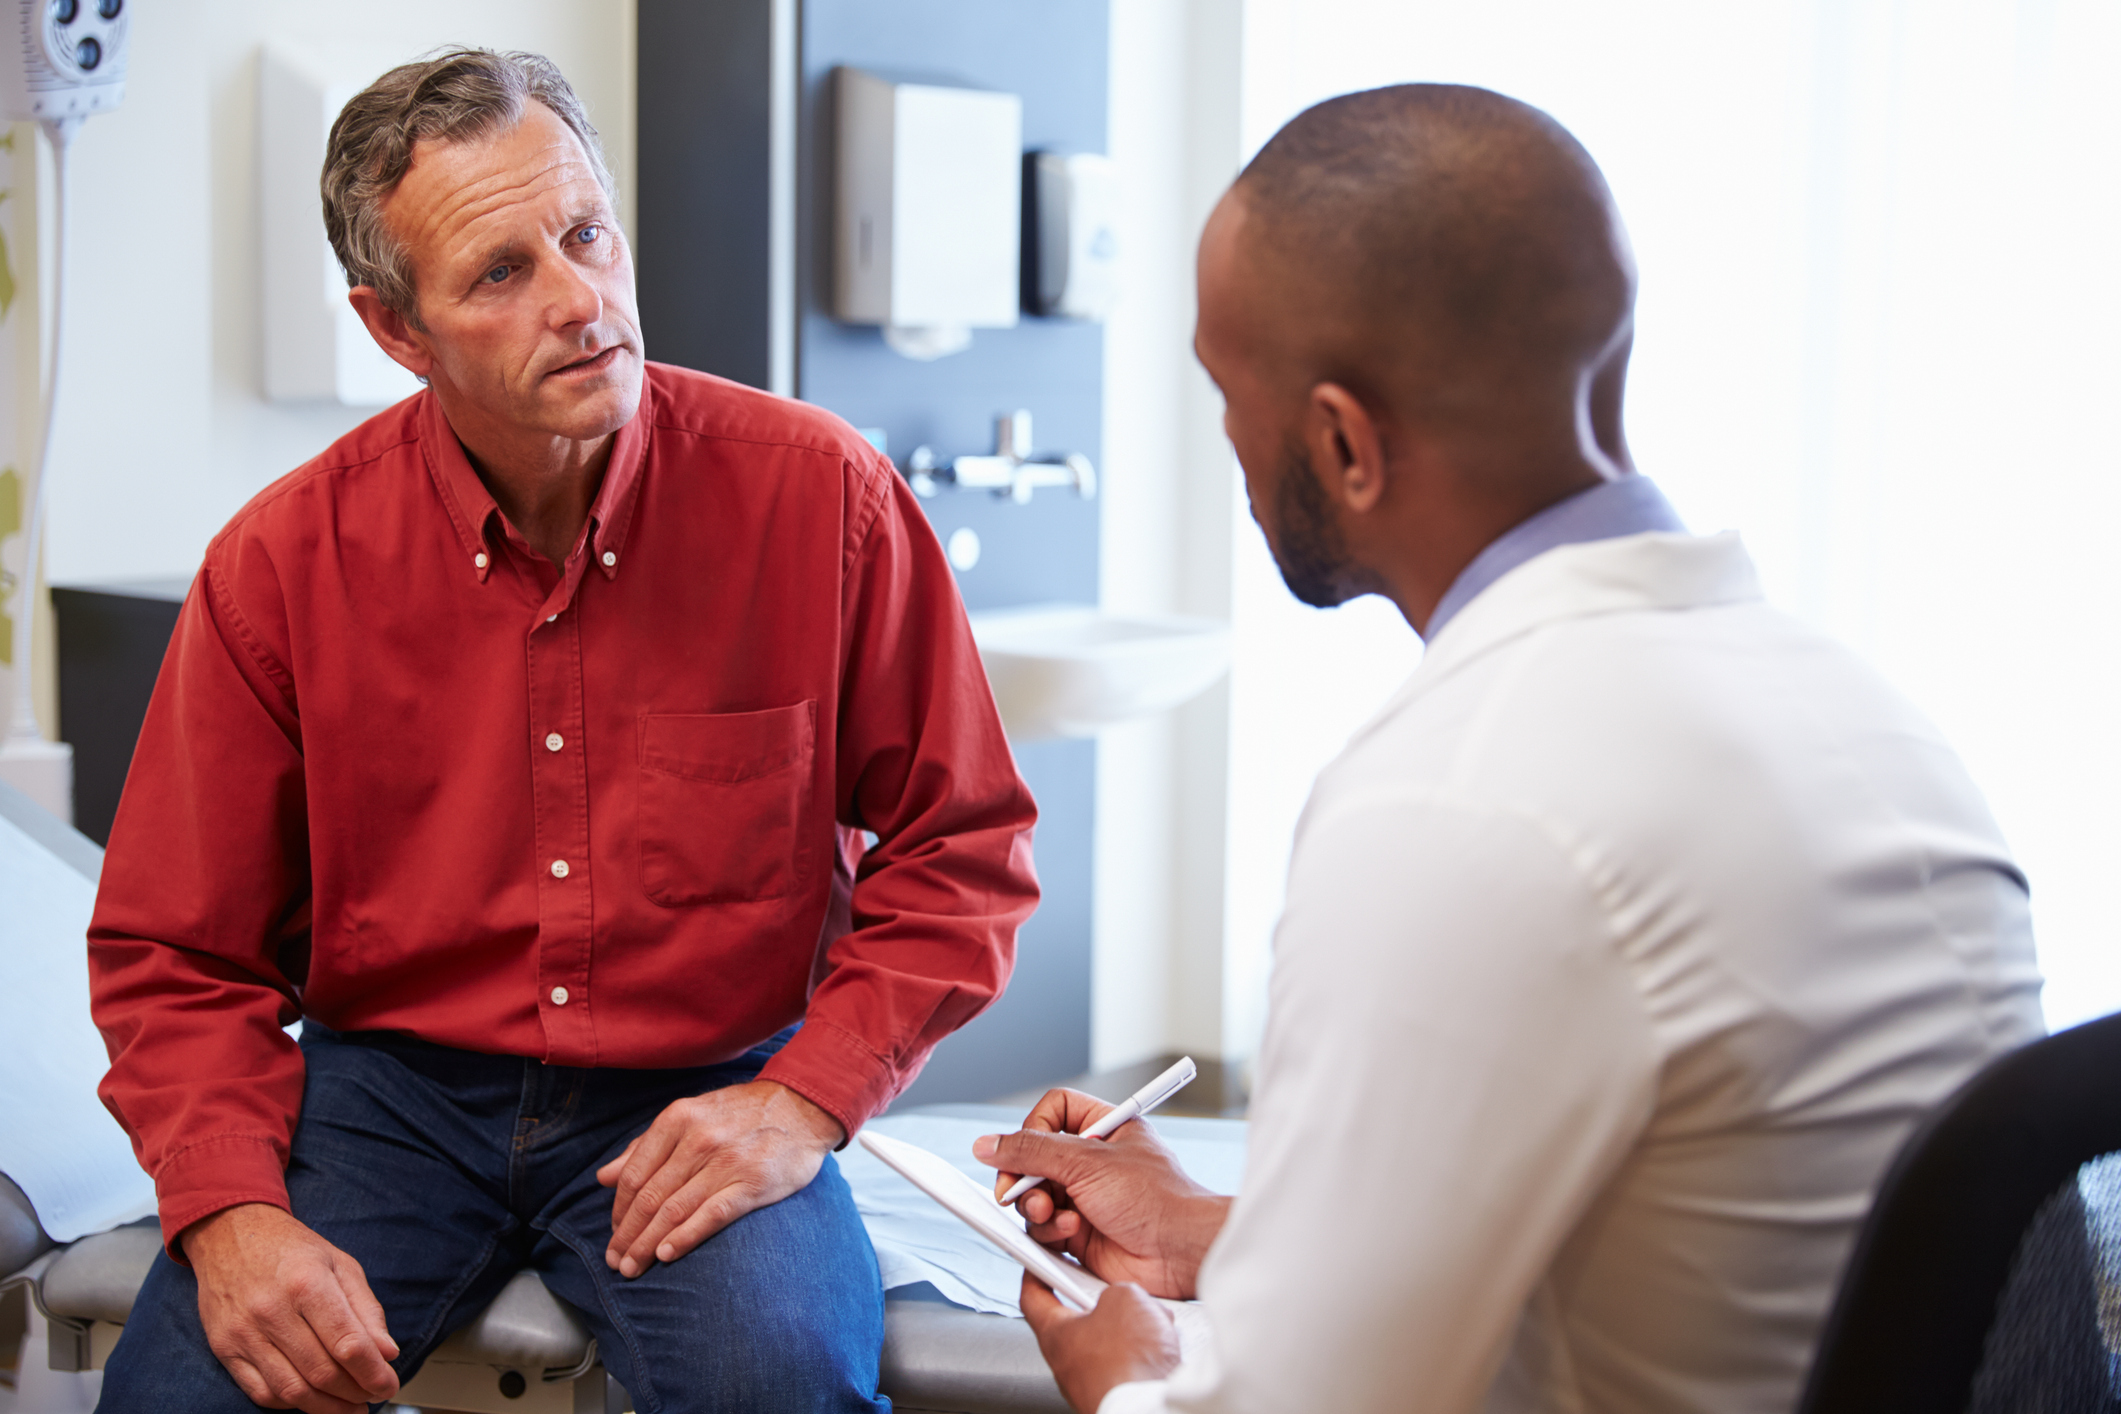 The medical procedure that increases testicular cancer risk